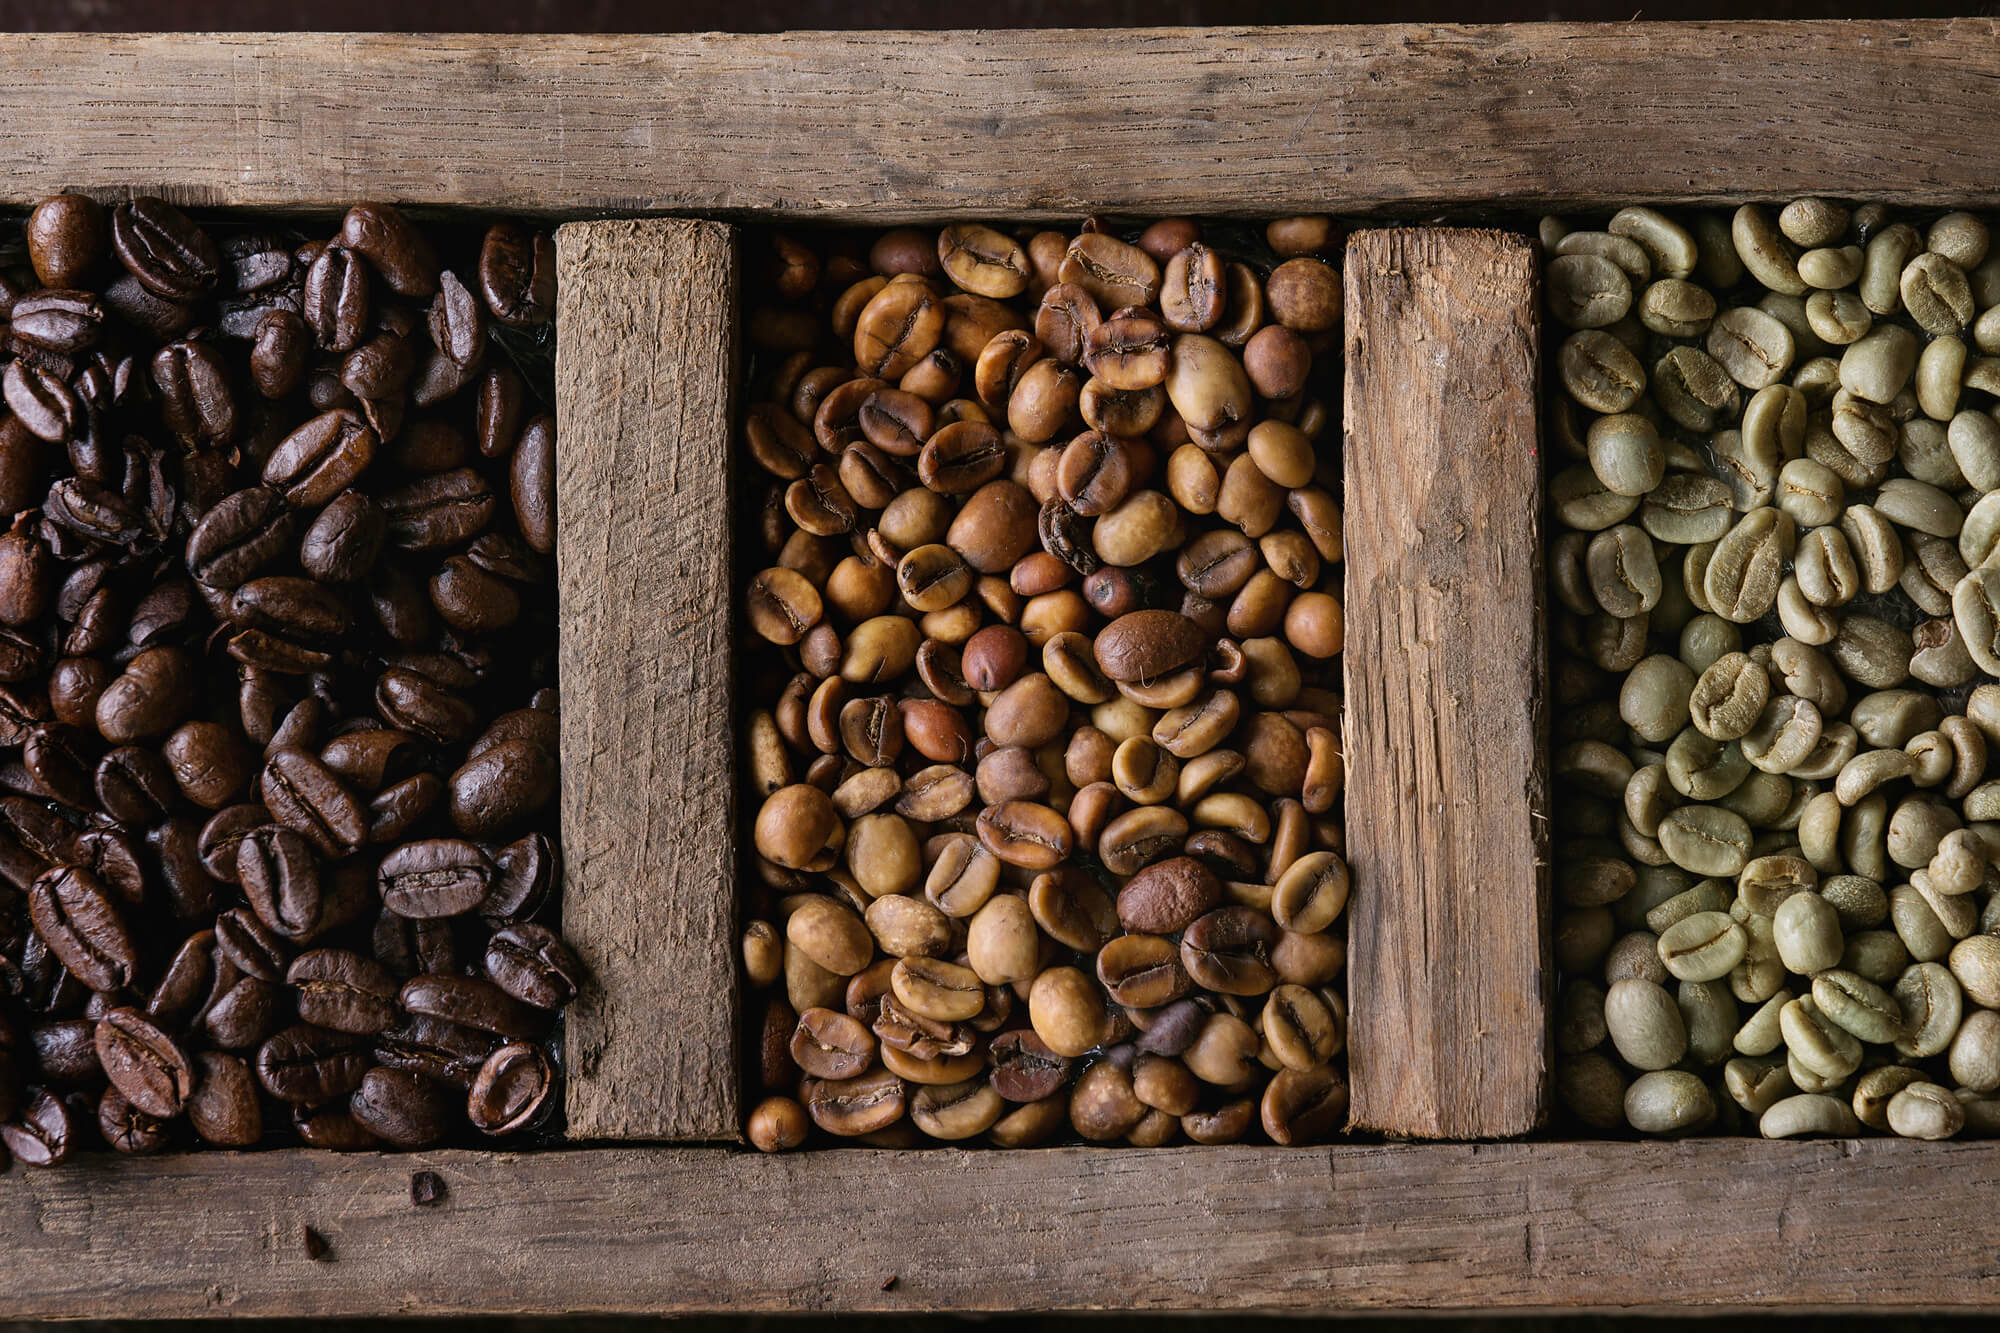 Green and Brown Decaf Unroasted and Black Roasted Coffee Beans in Old Wooden Box.